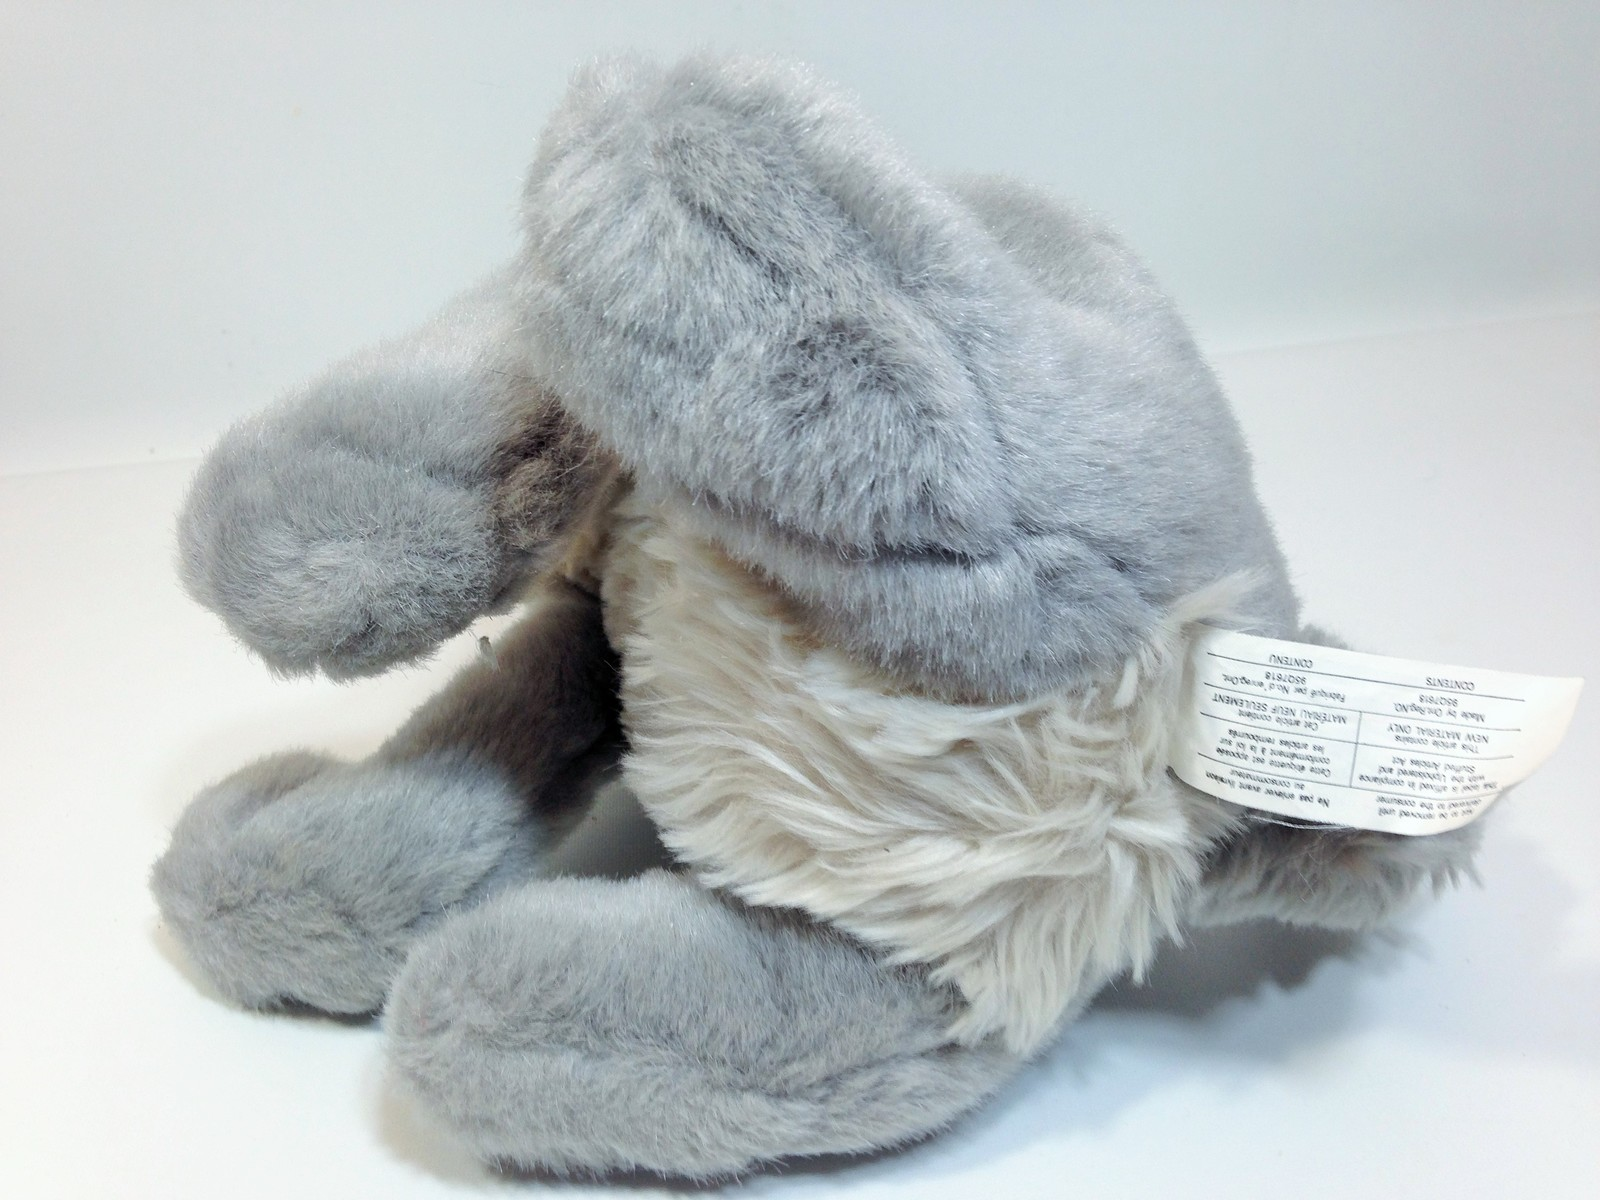 "Vintage Disney Tramp Plush Dog Grey Stuffed Animal Metal DogTag 14"" image 8"